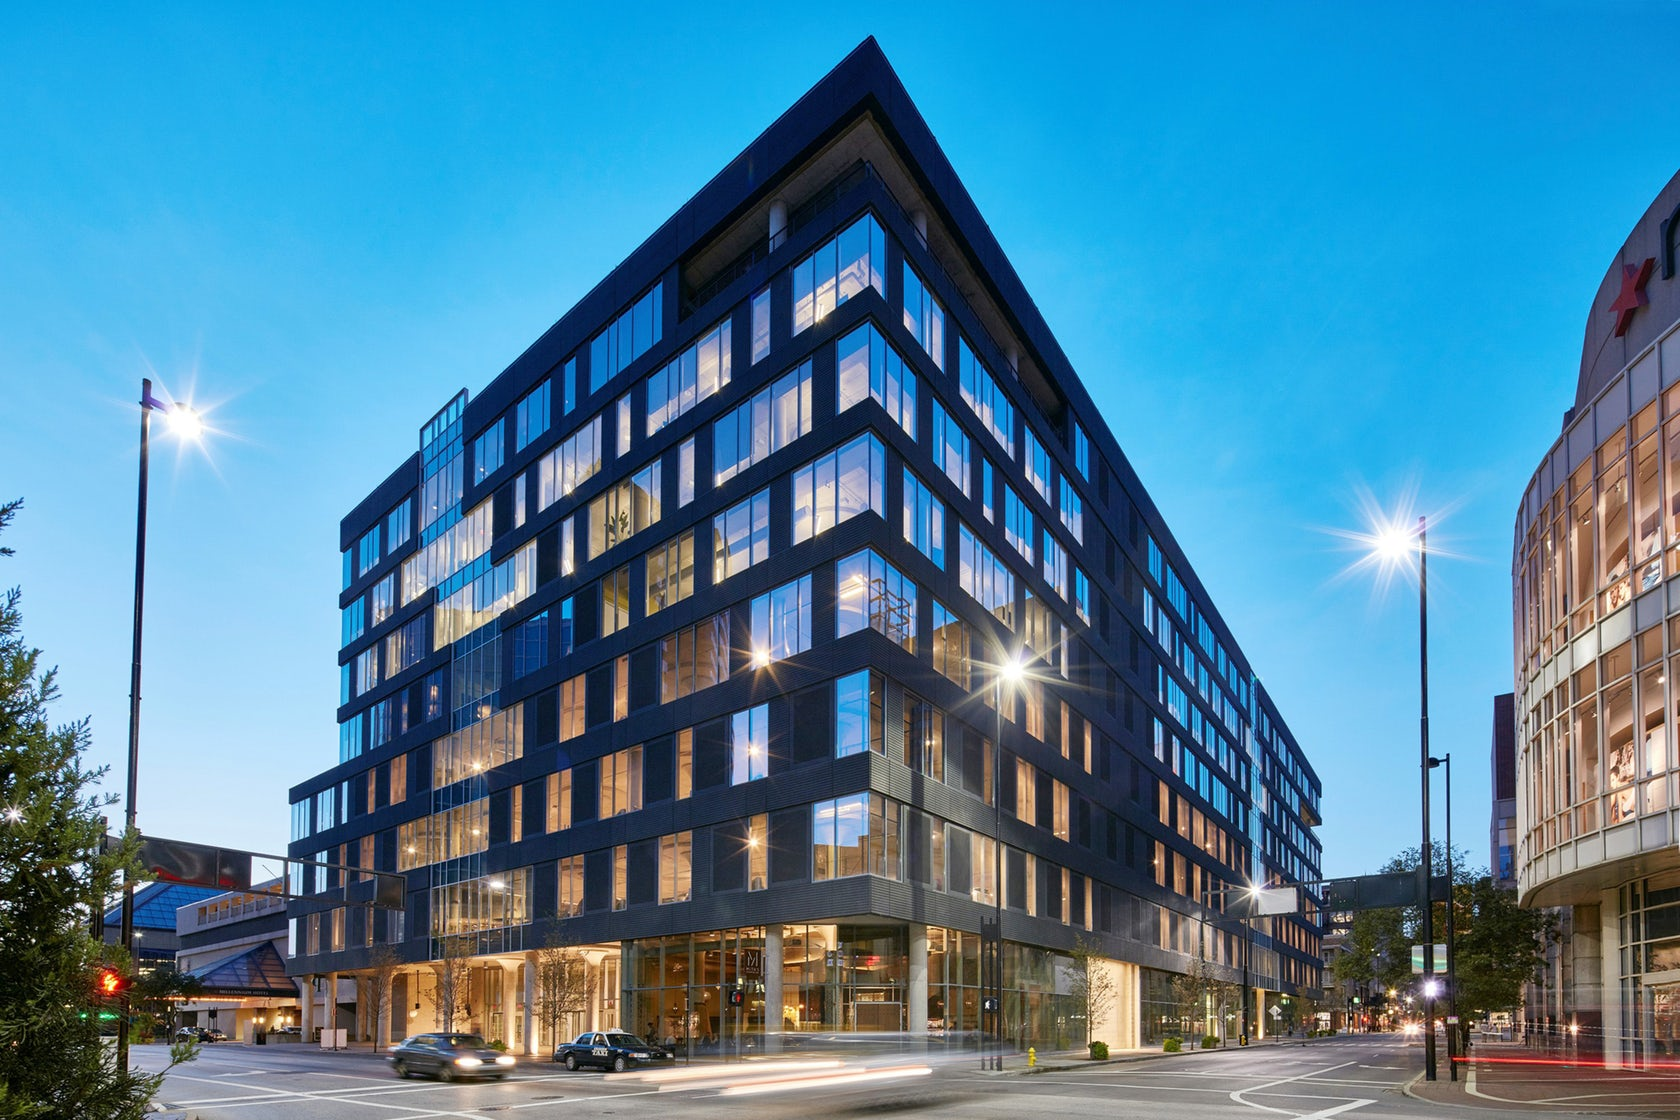 84.51˚ - 100 W 5th St, Cincinnati, OH 45202Gensler (Chicago), completed 2015